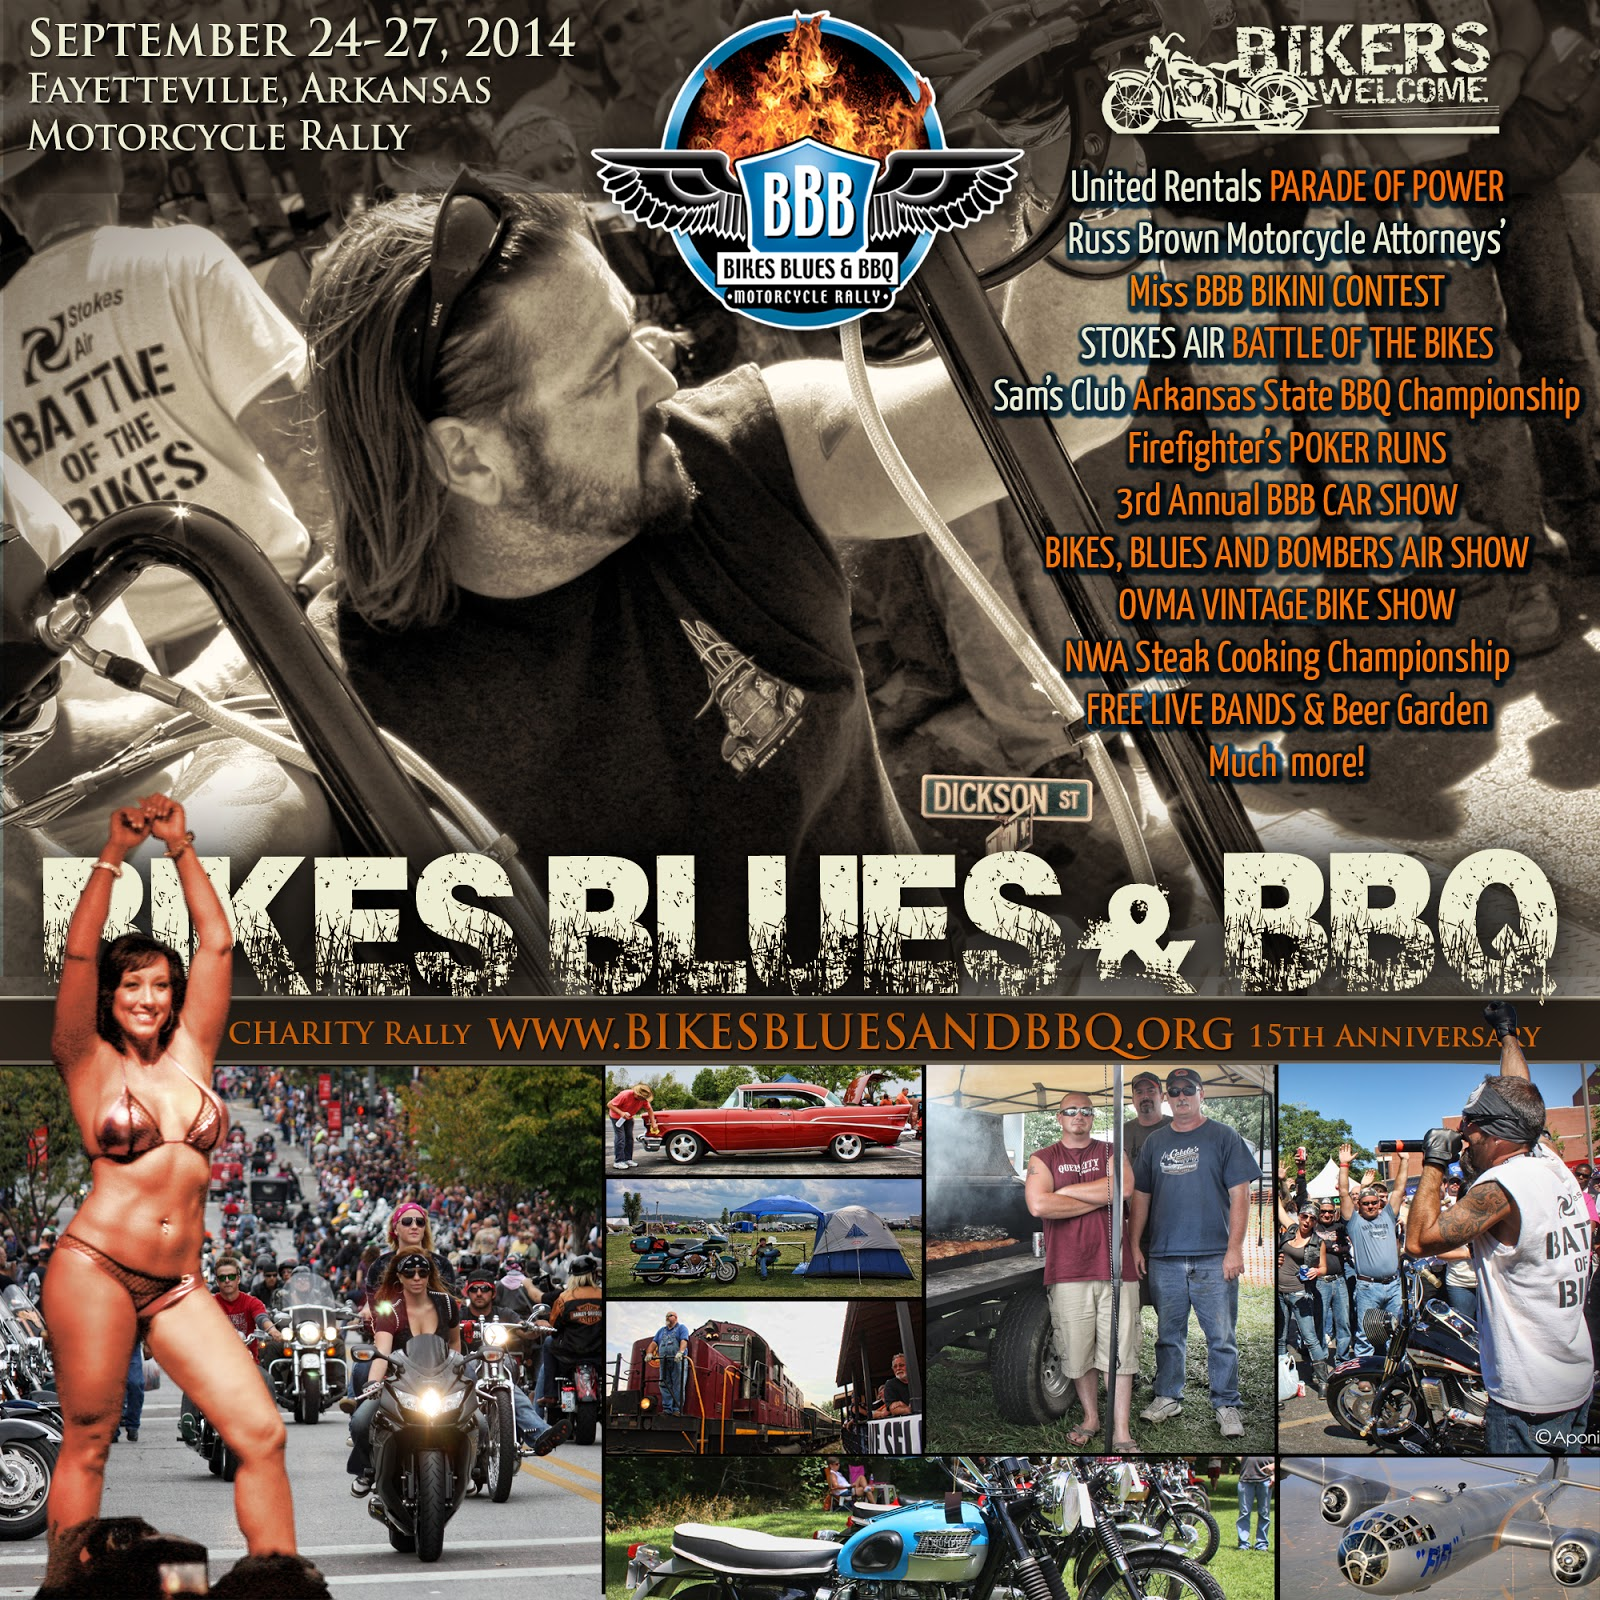 Bikes Blues And Bbq Schedule Of Events Bikes Blues and BBQ Events